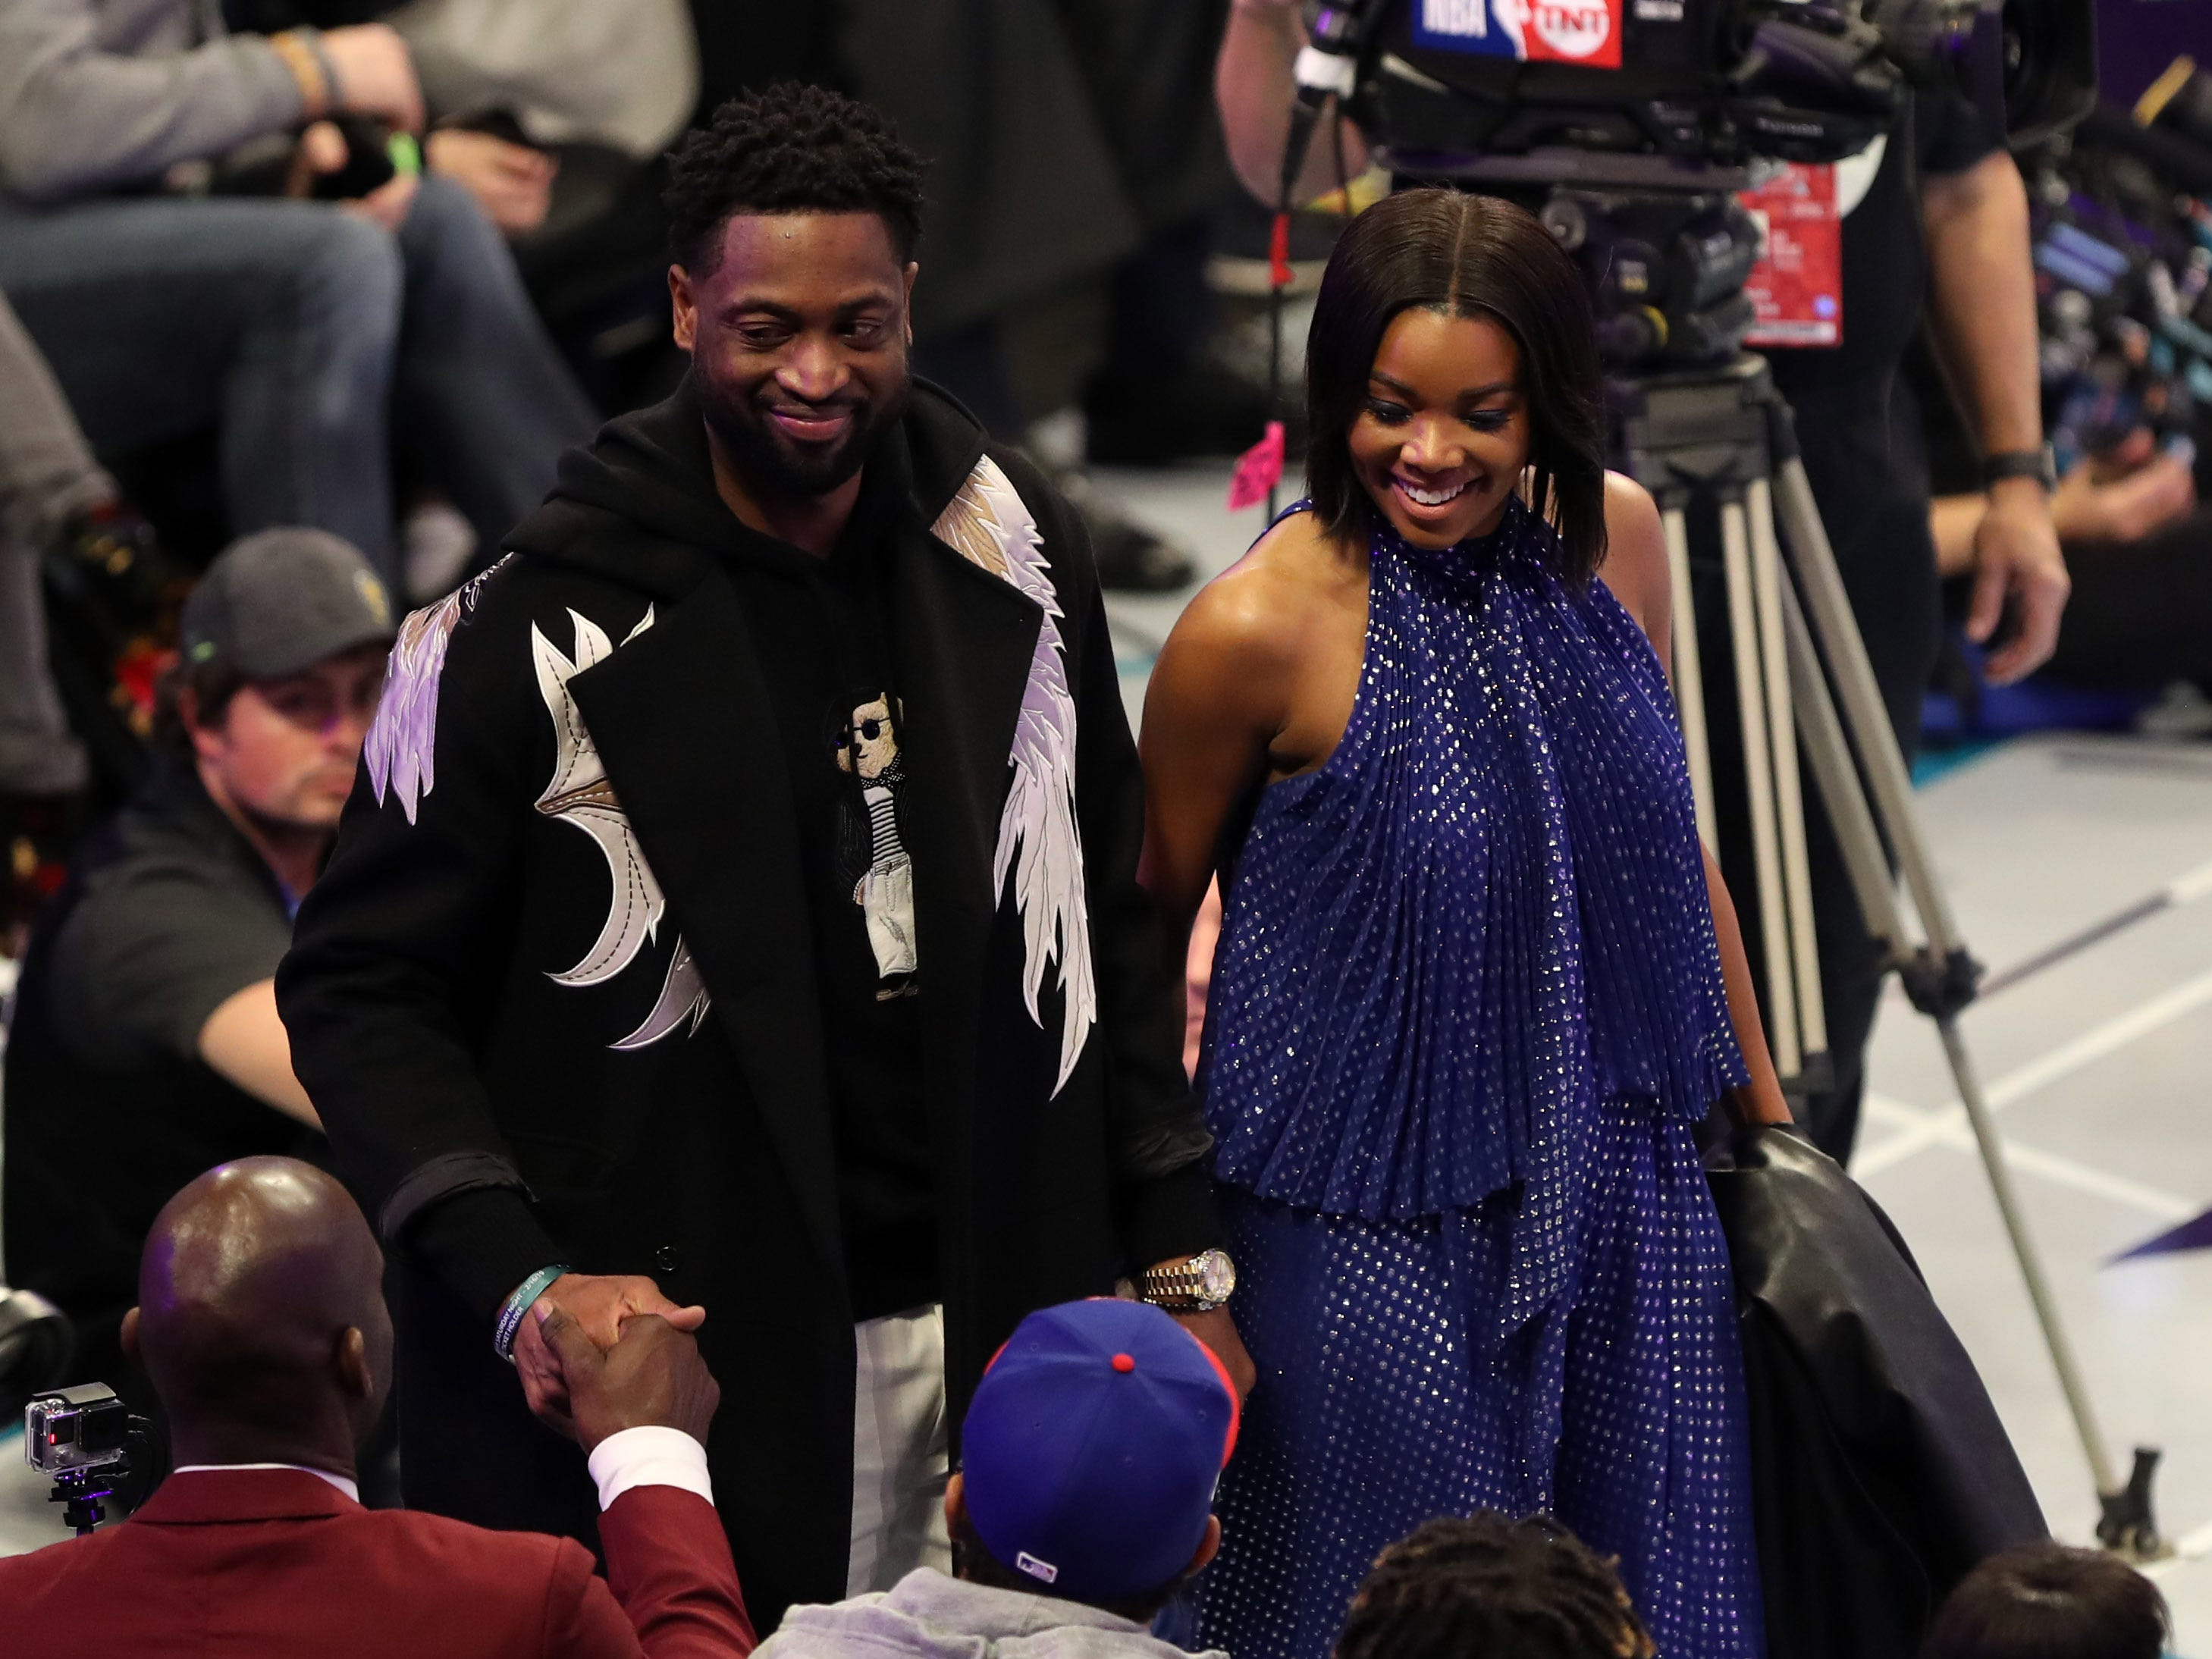 Dwyane Wade and wife Gabrielle Union-Wade walk on to the court during NBA All-Star Saturday Night.